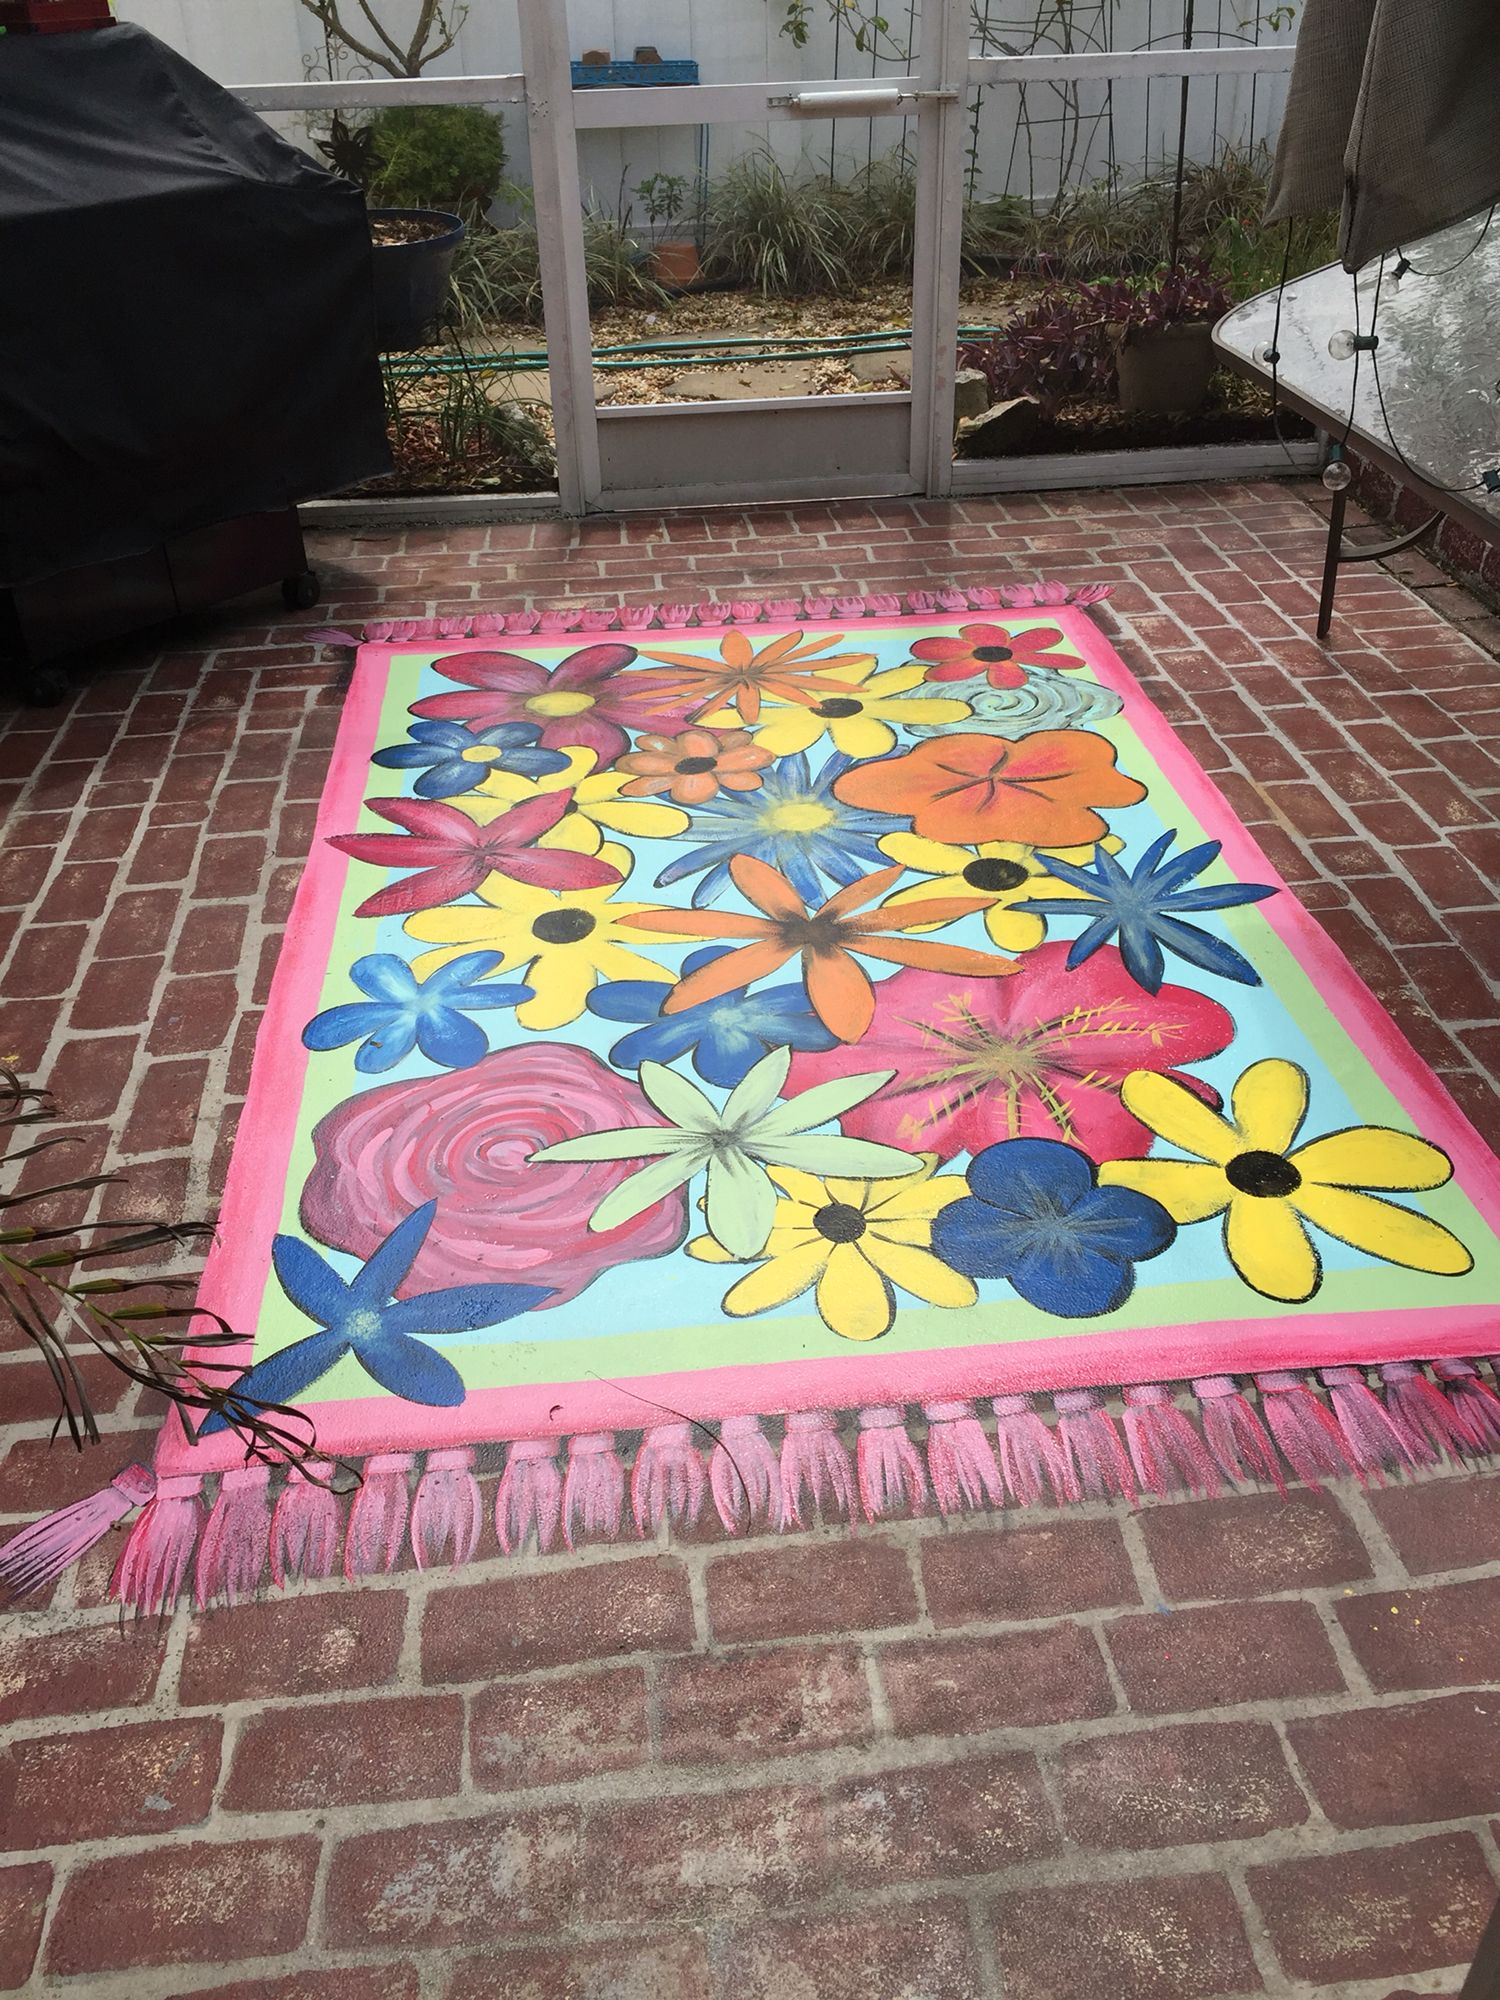 Painted Rug On Concrete Patio